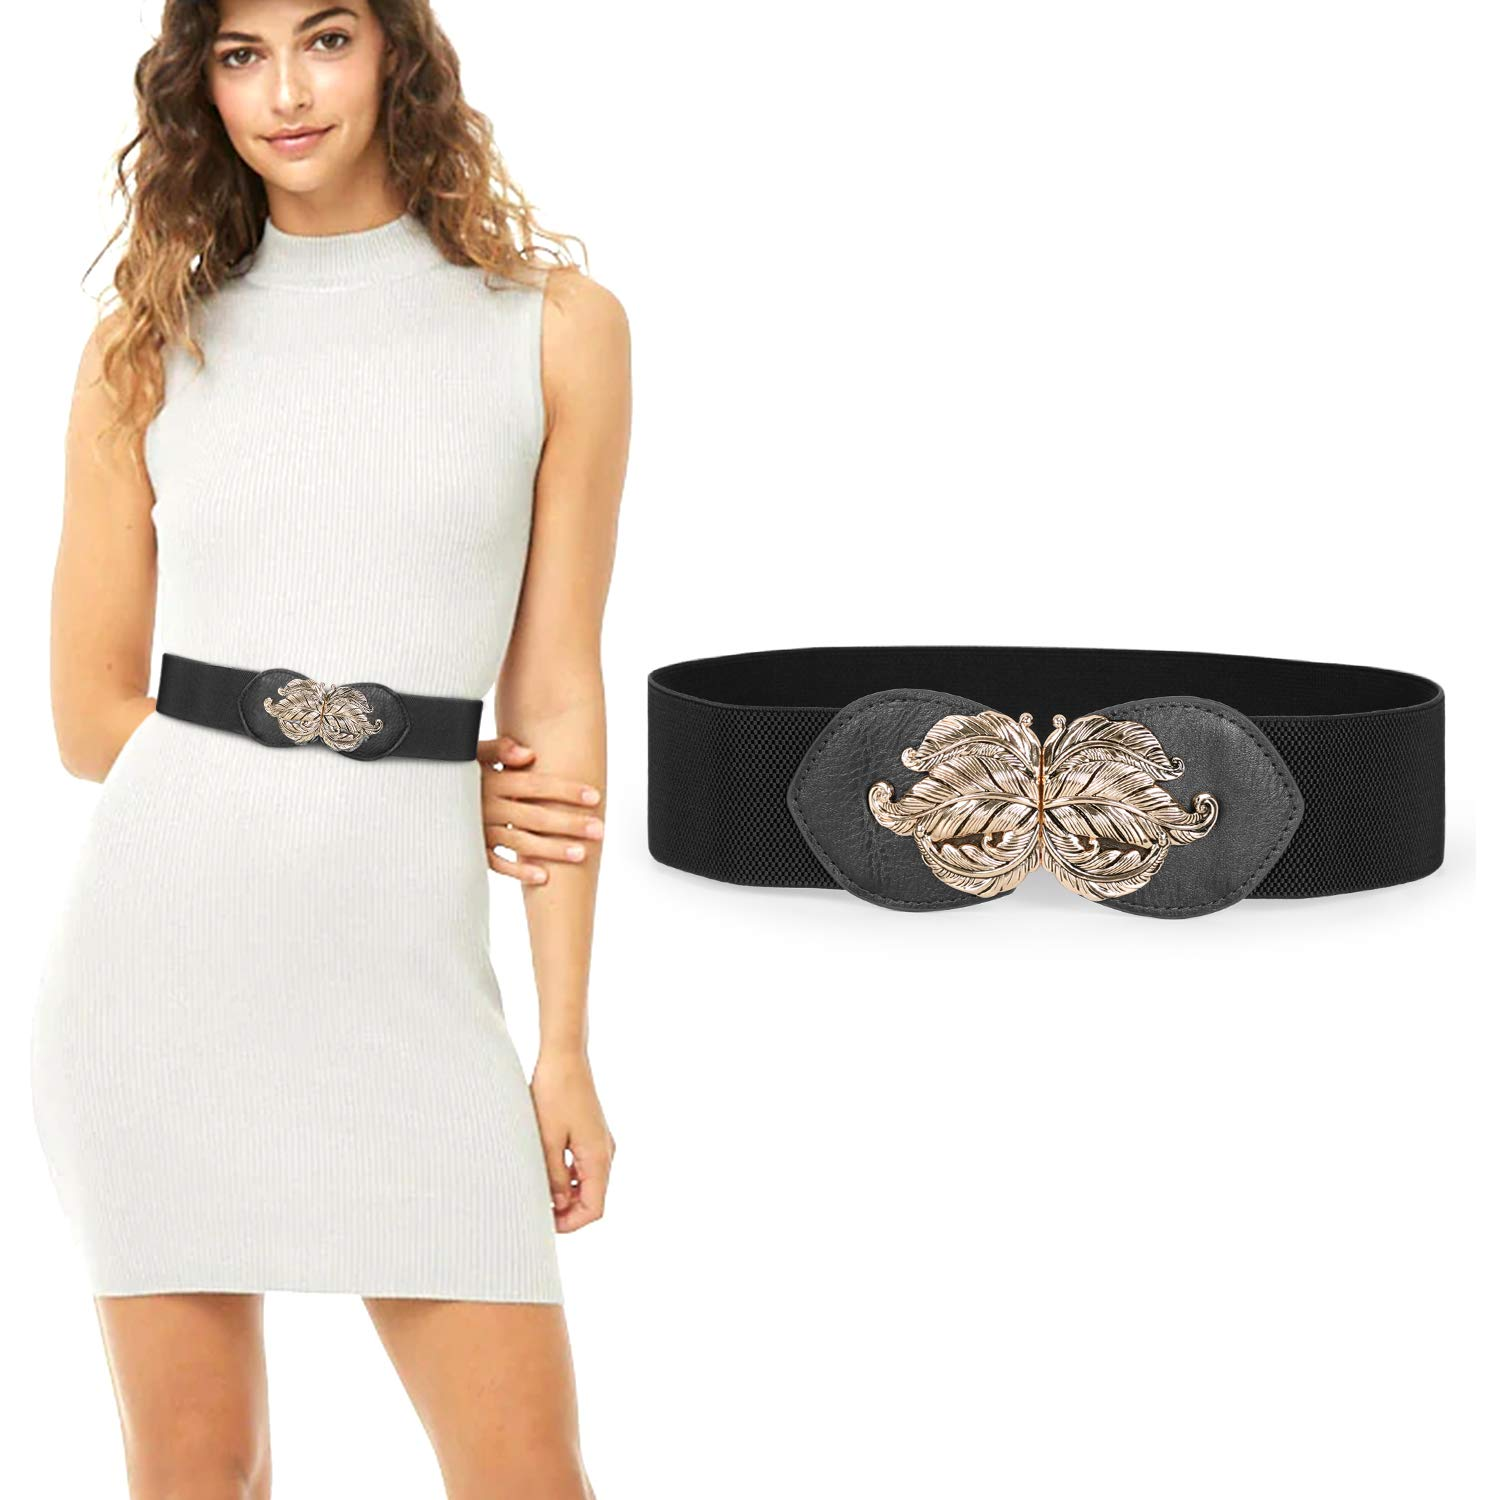 Must have belt to add more classy